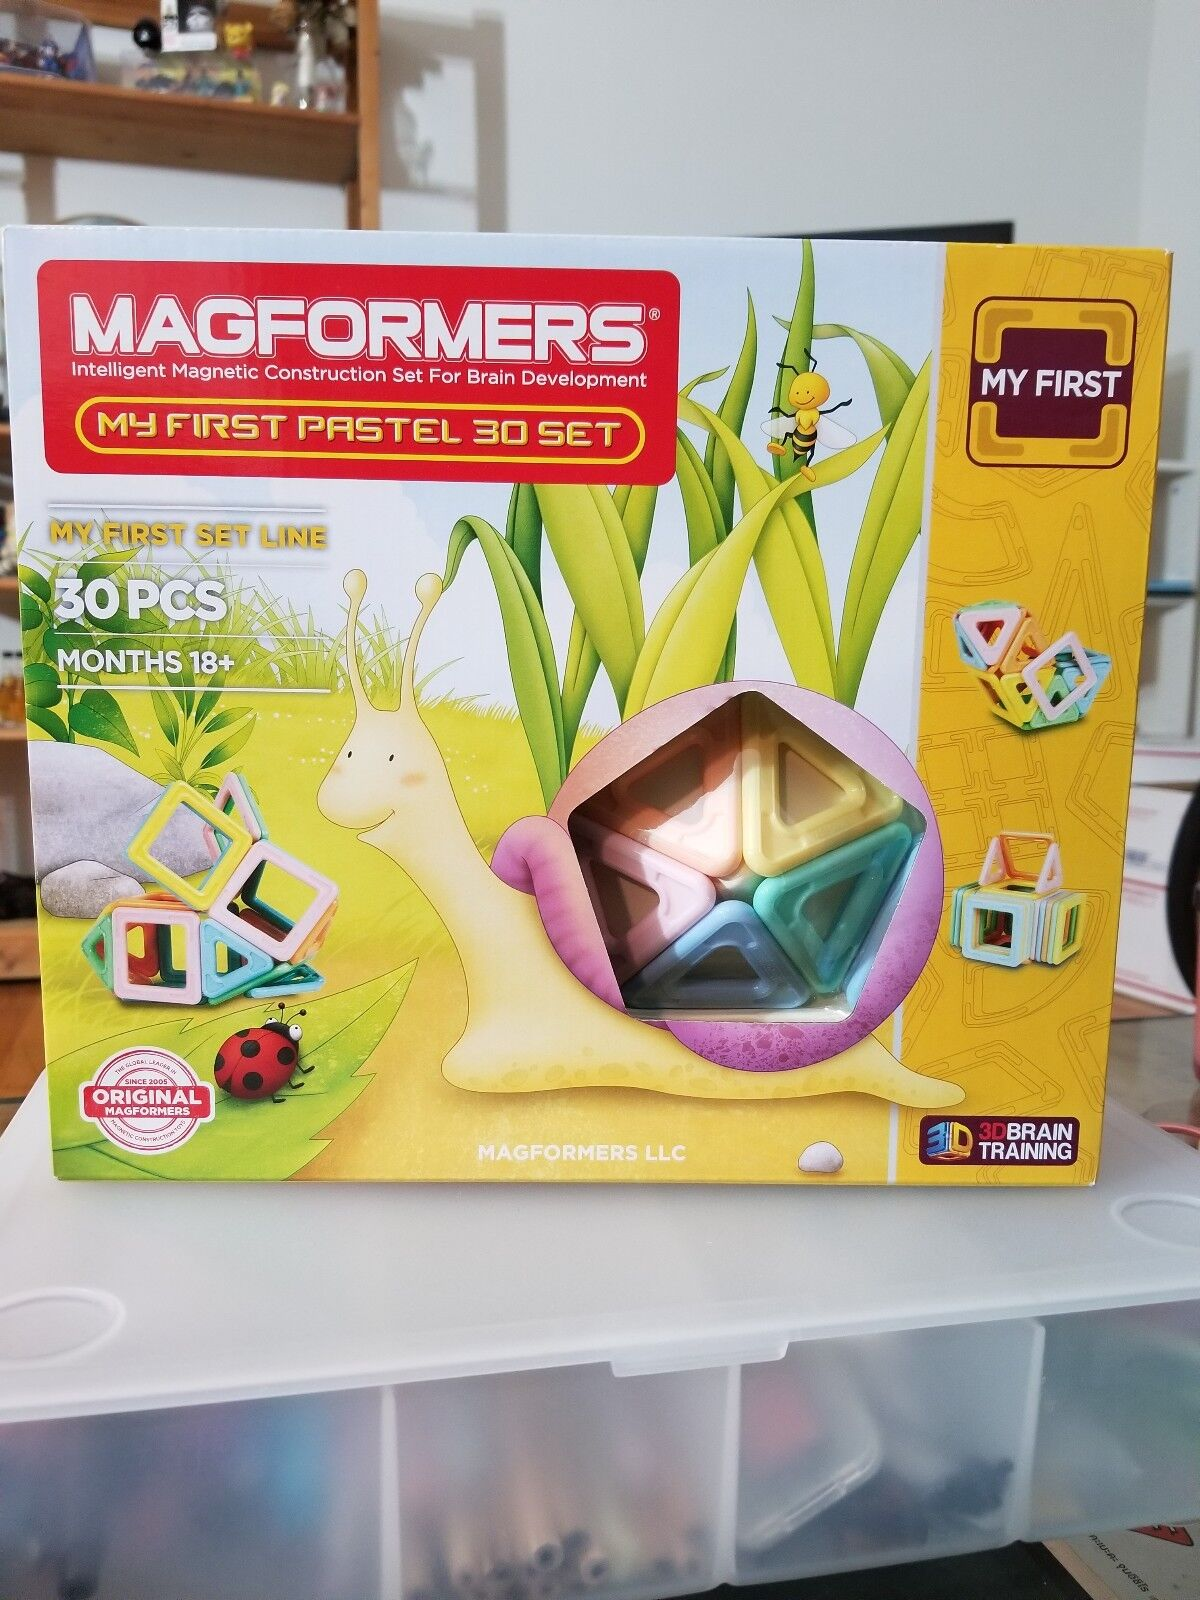 My First Magformers 30 Pieces Magnetic Shapes 3D Building months 18+